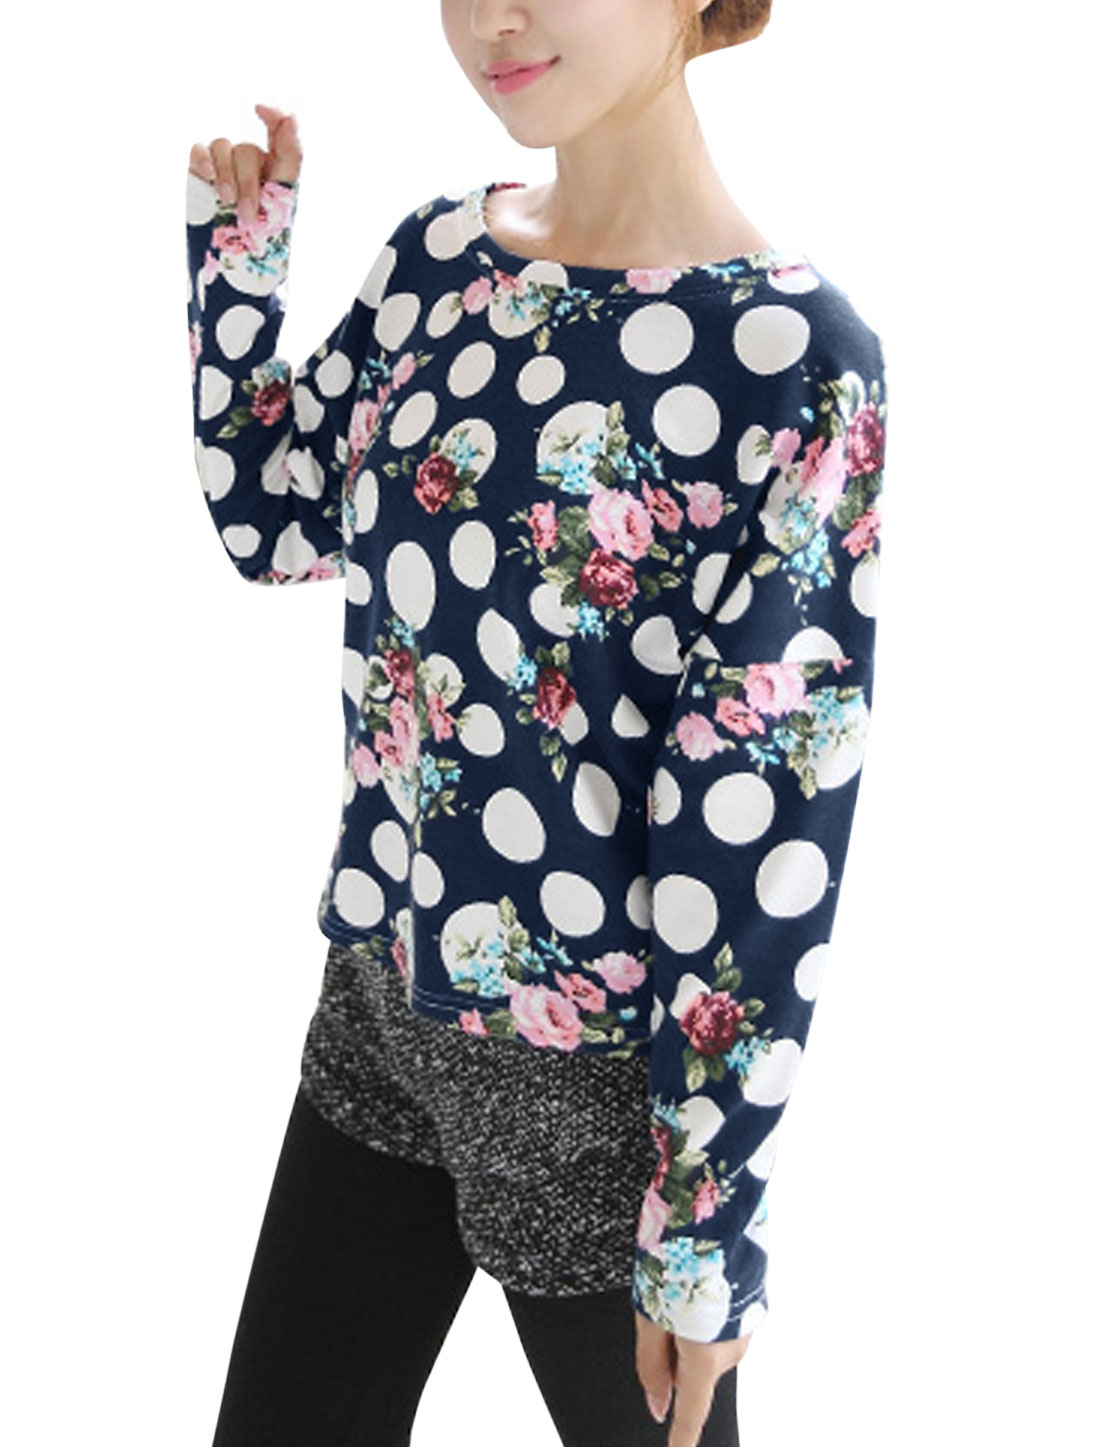 Women Polka Dots Pattern Round Neck Batwing Sleeve Casual Top Navy Blue M